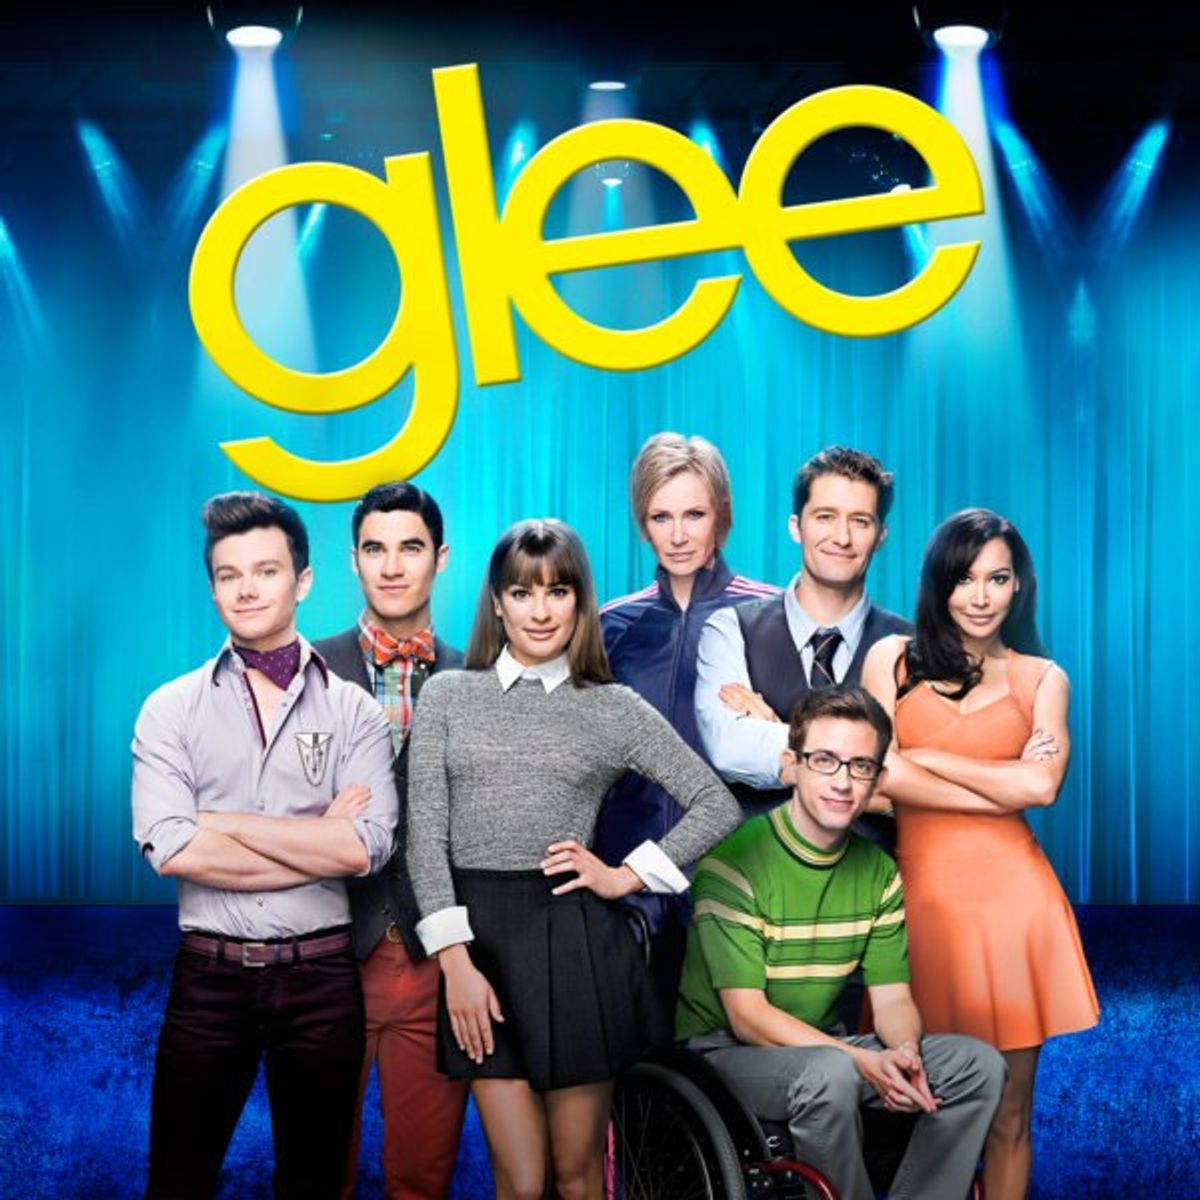 Glee: The Show That Largely Shaped Millennials